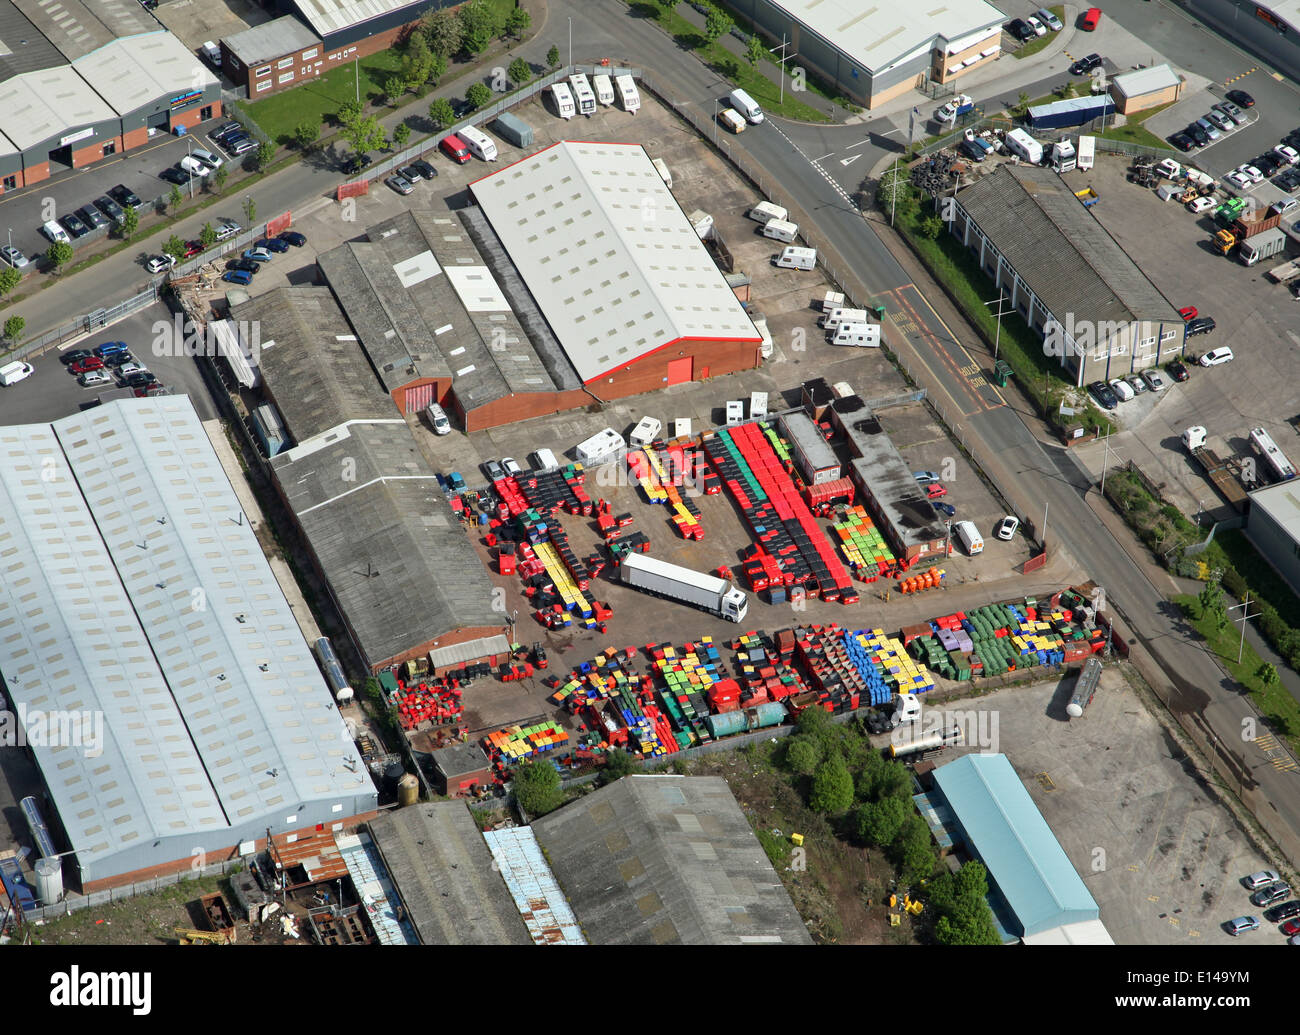 aerial view of colourful stock in a warehouse yard in Widnes - Stock Image